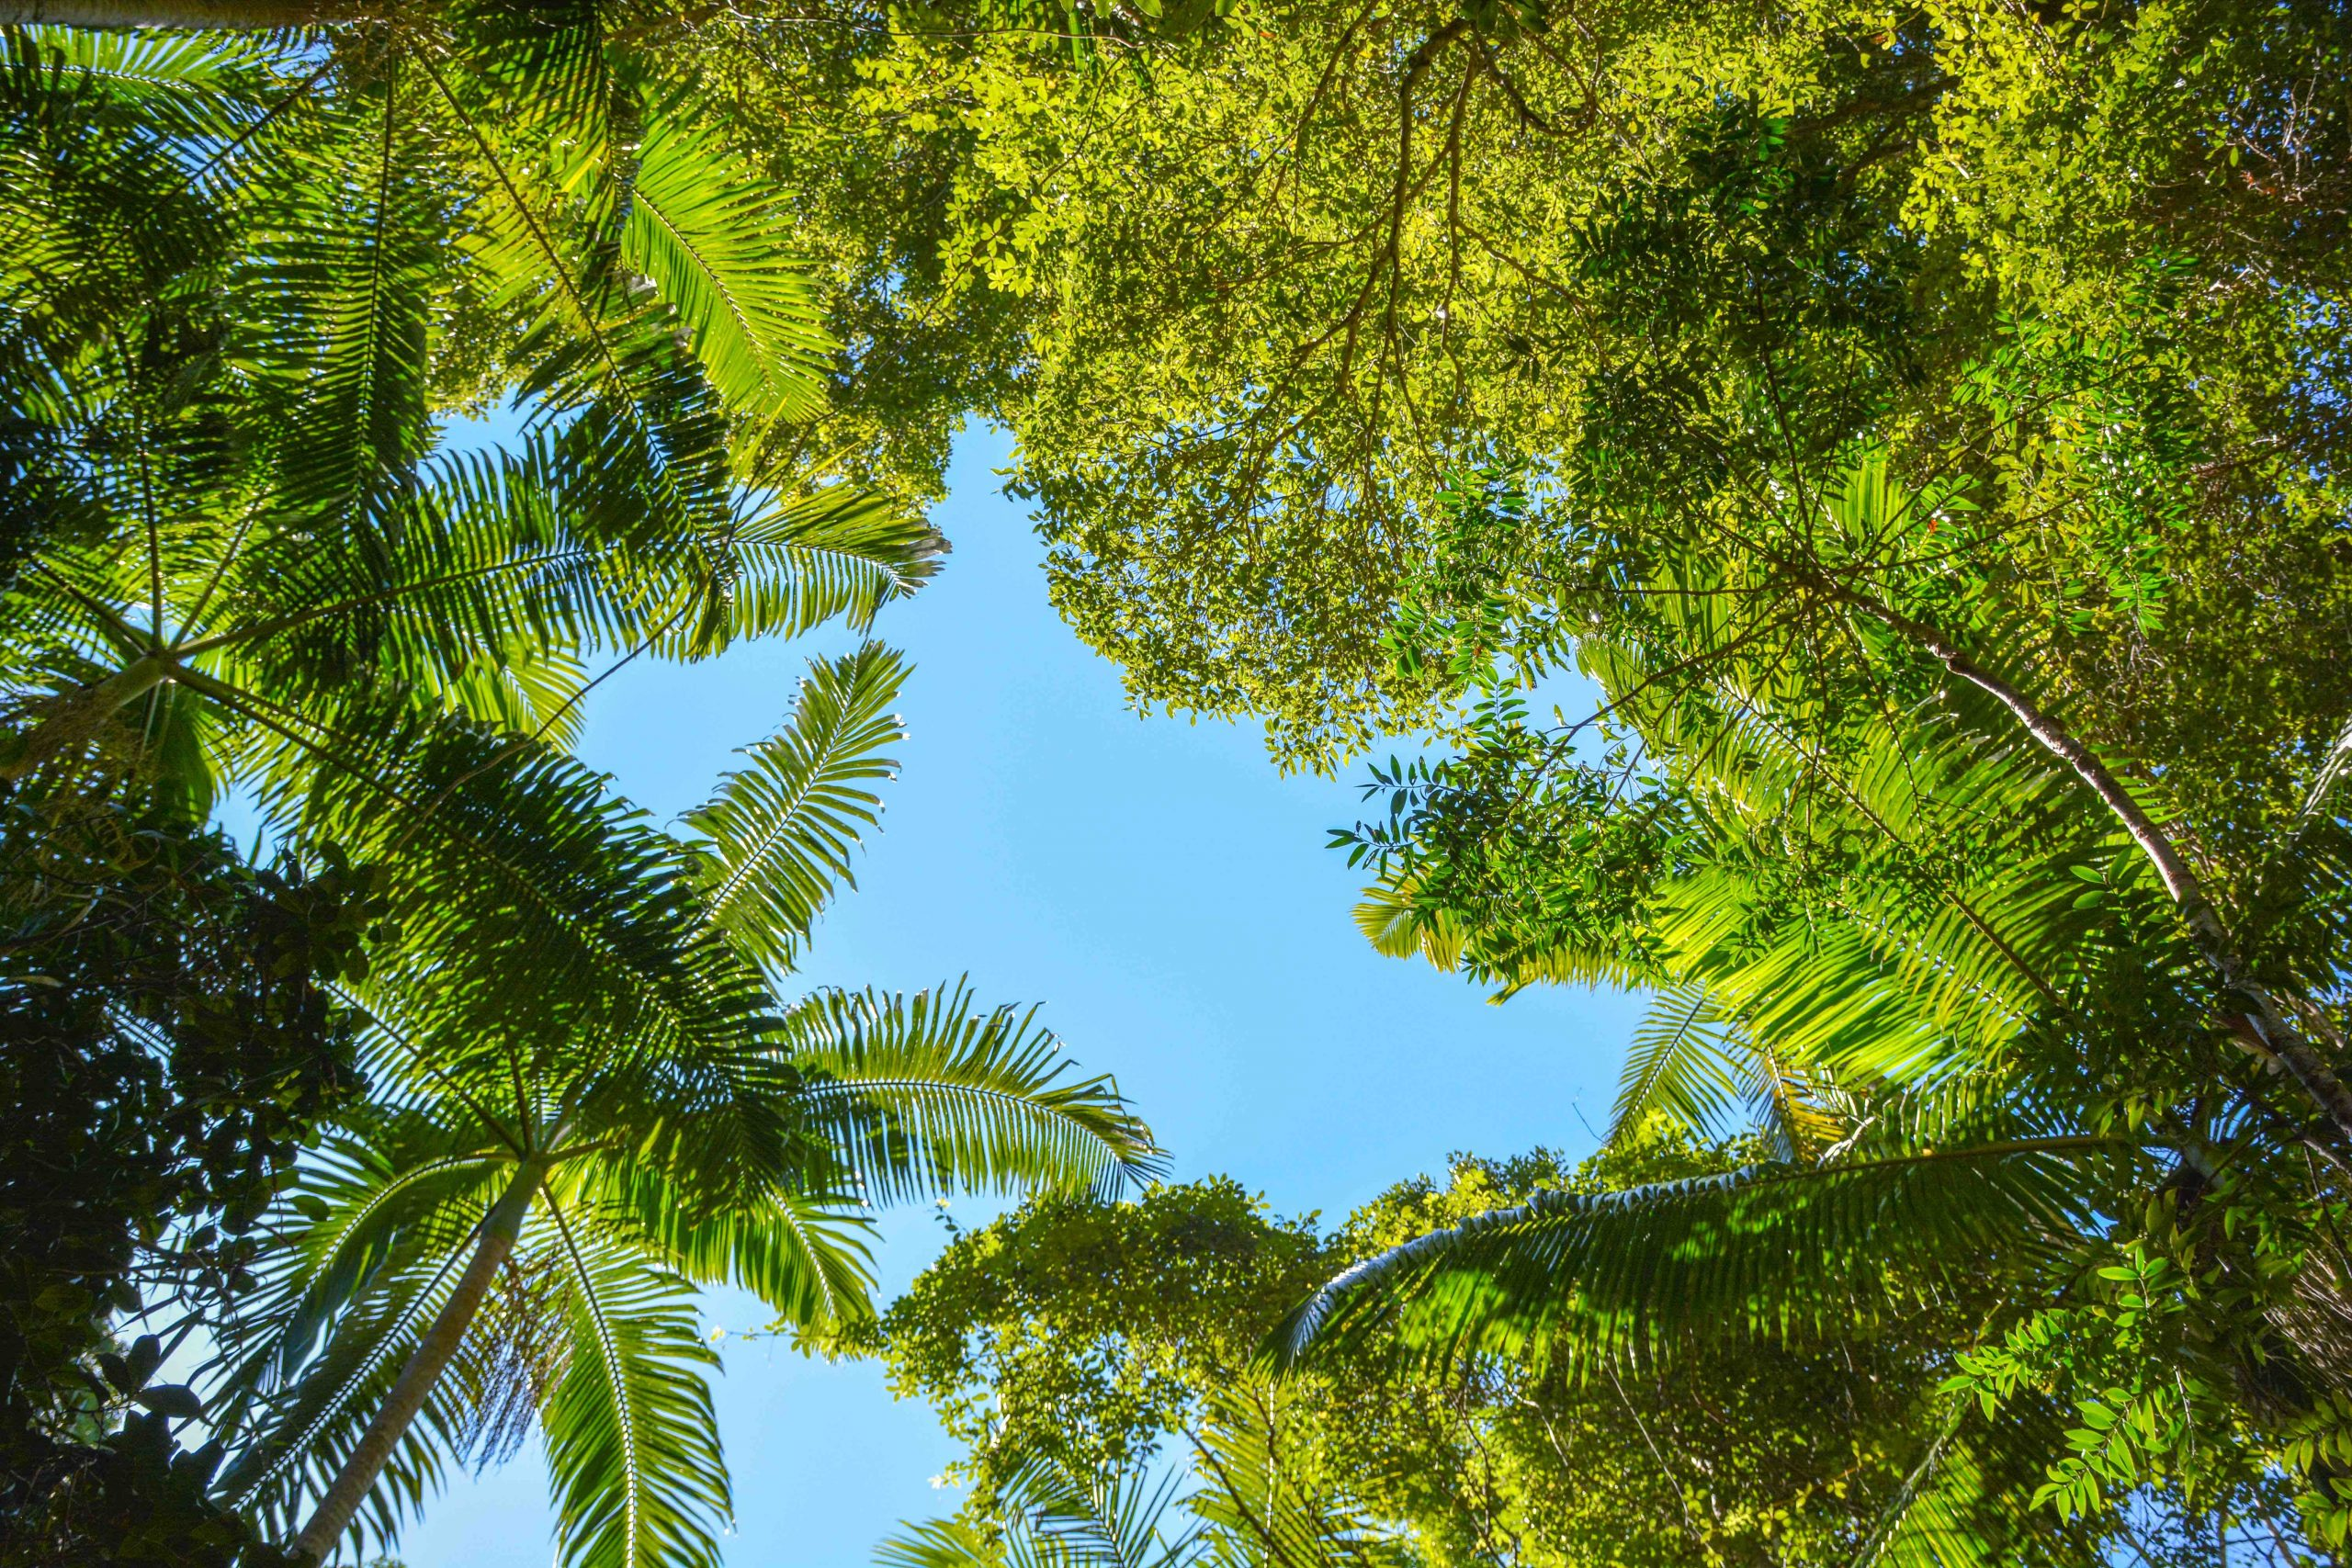 rainforest Canopy at Pile Valley on Fraser Island